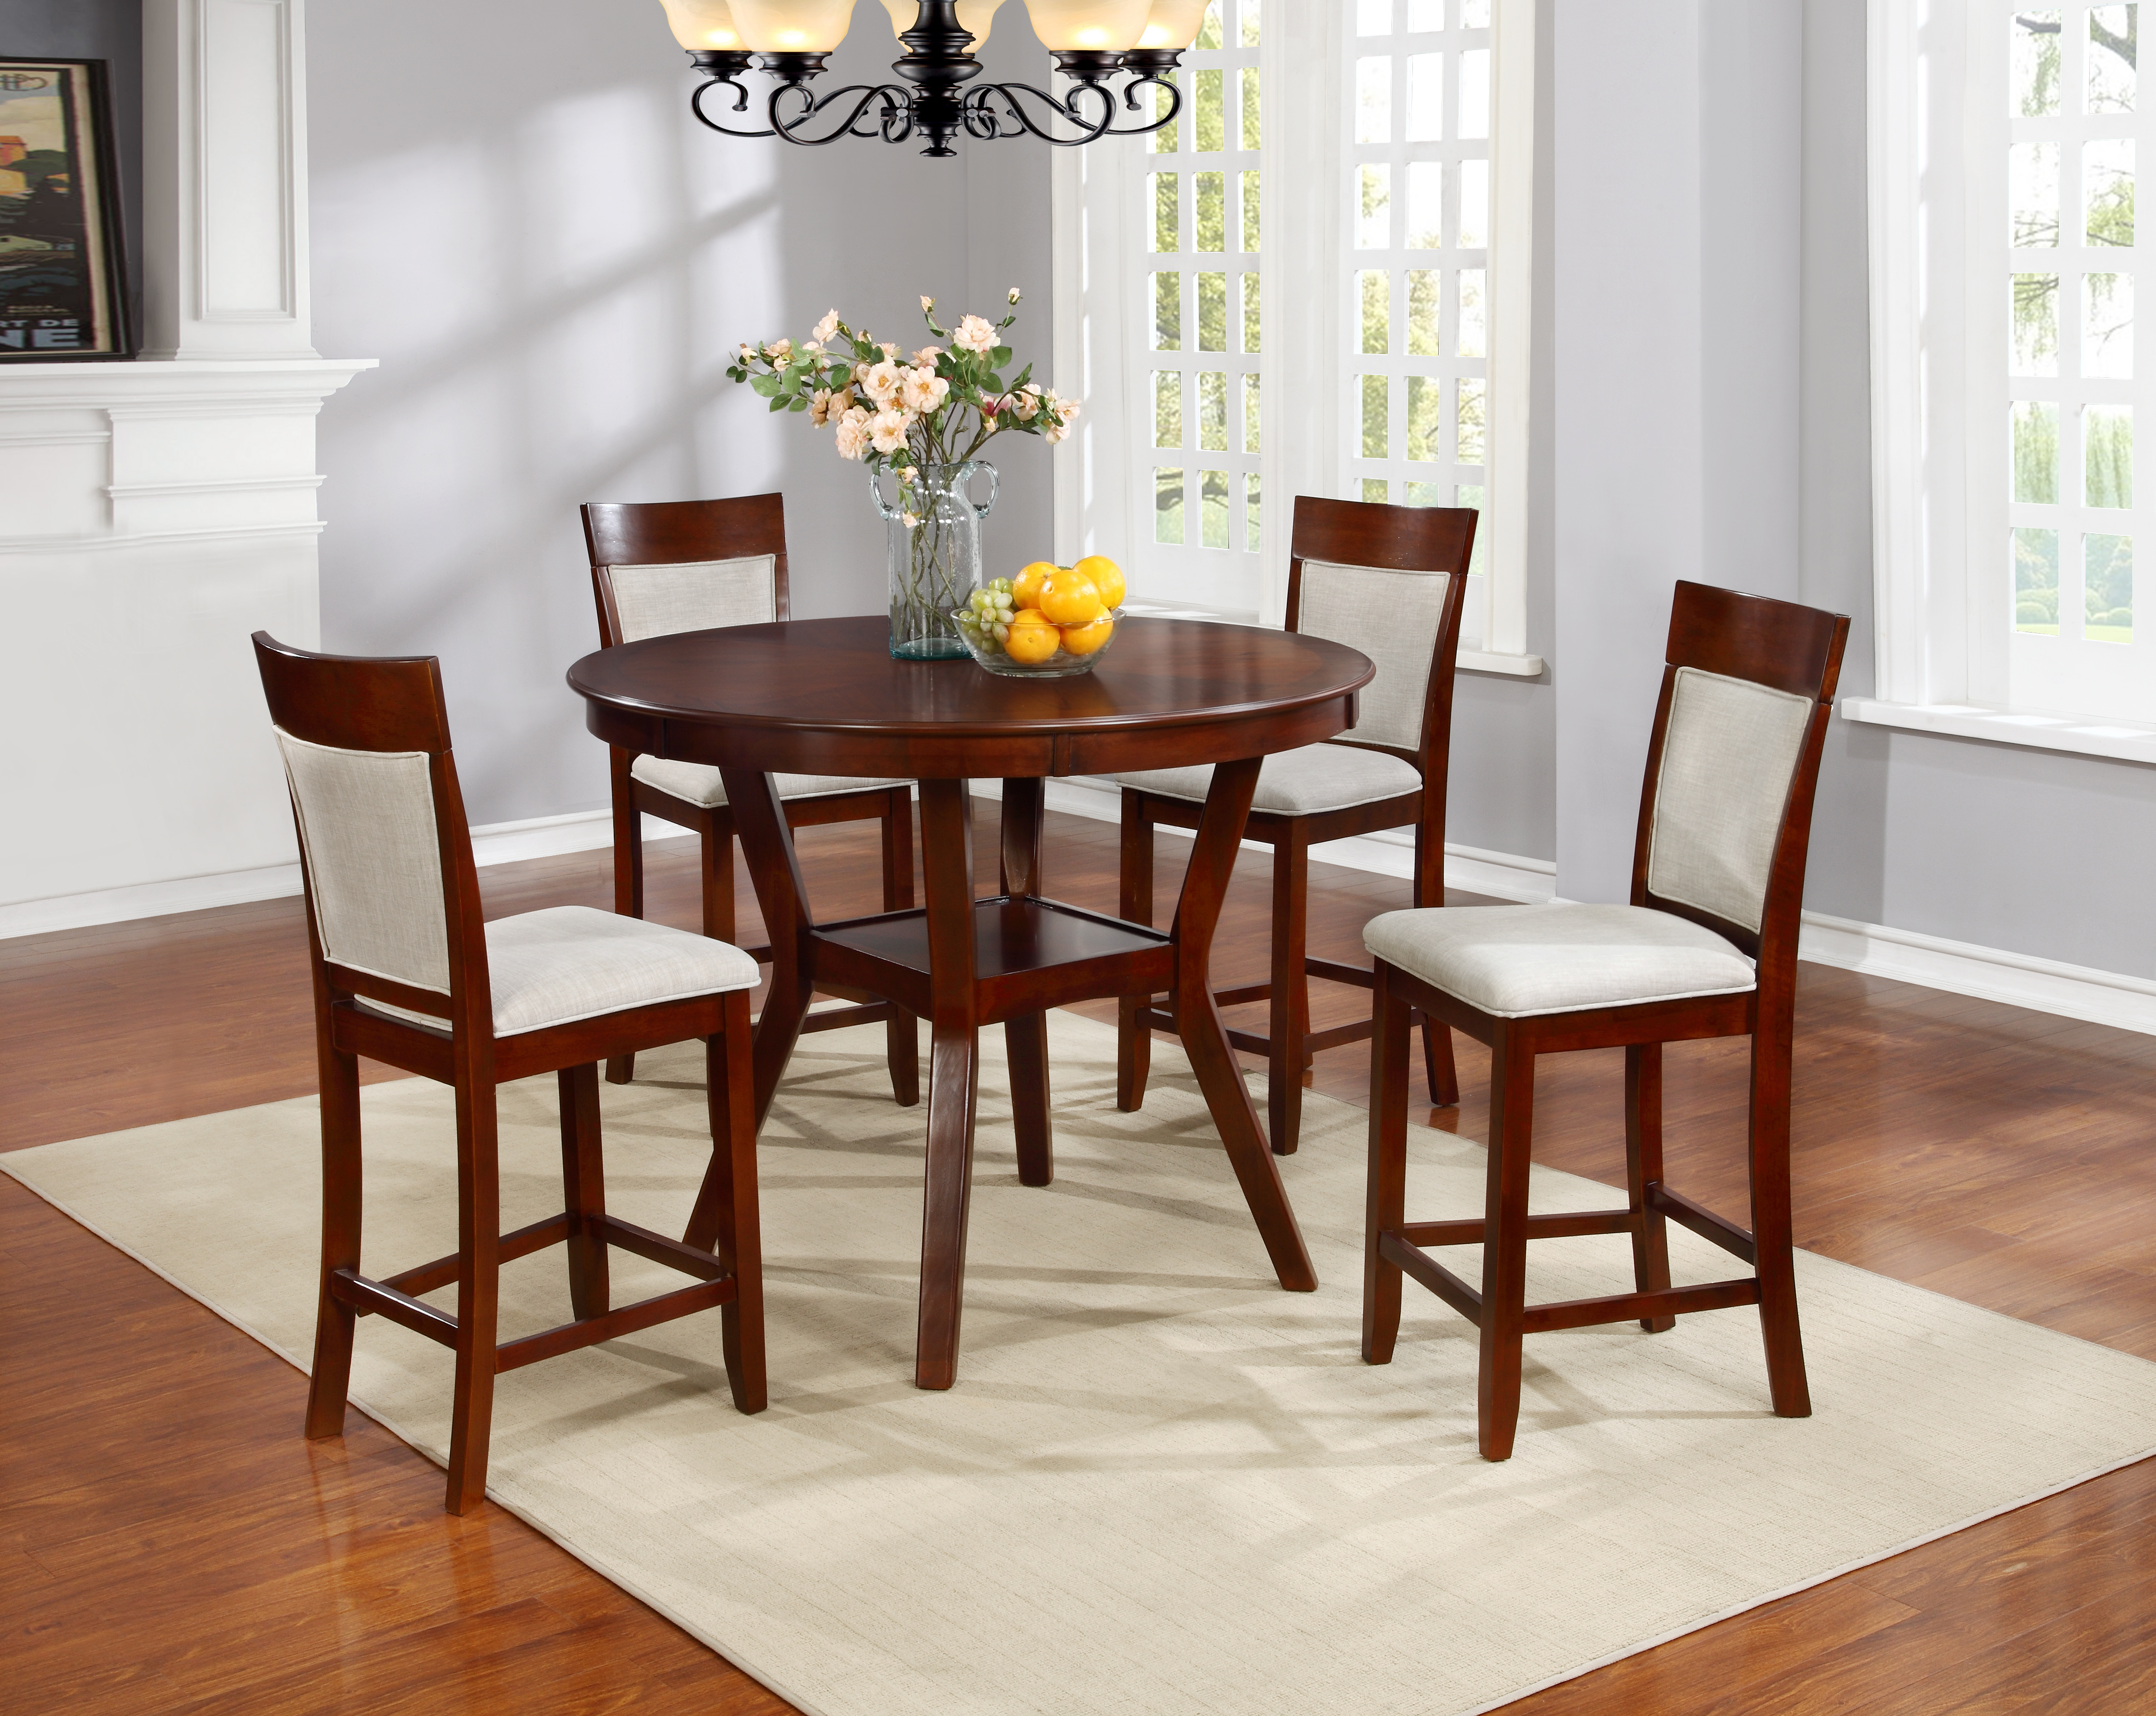 D2900 - Webb 5 Pcs Dining